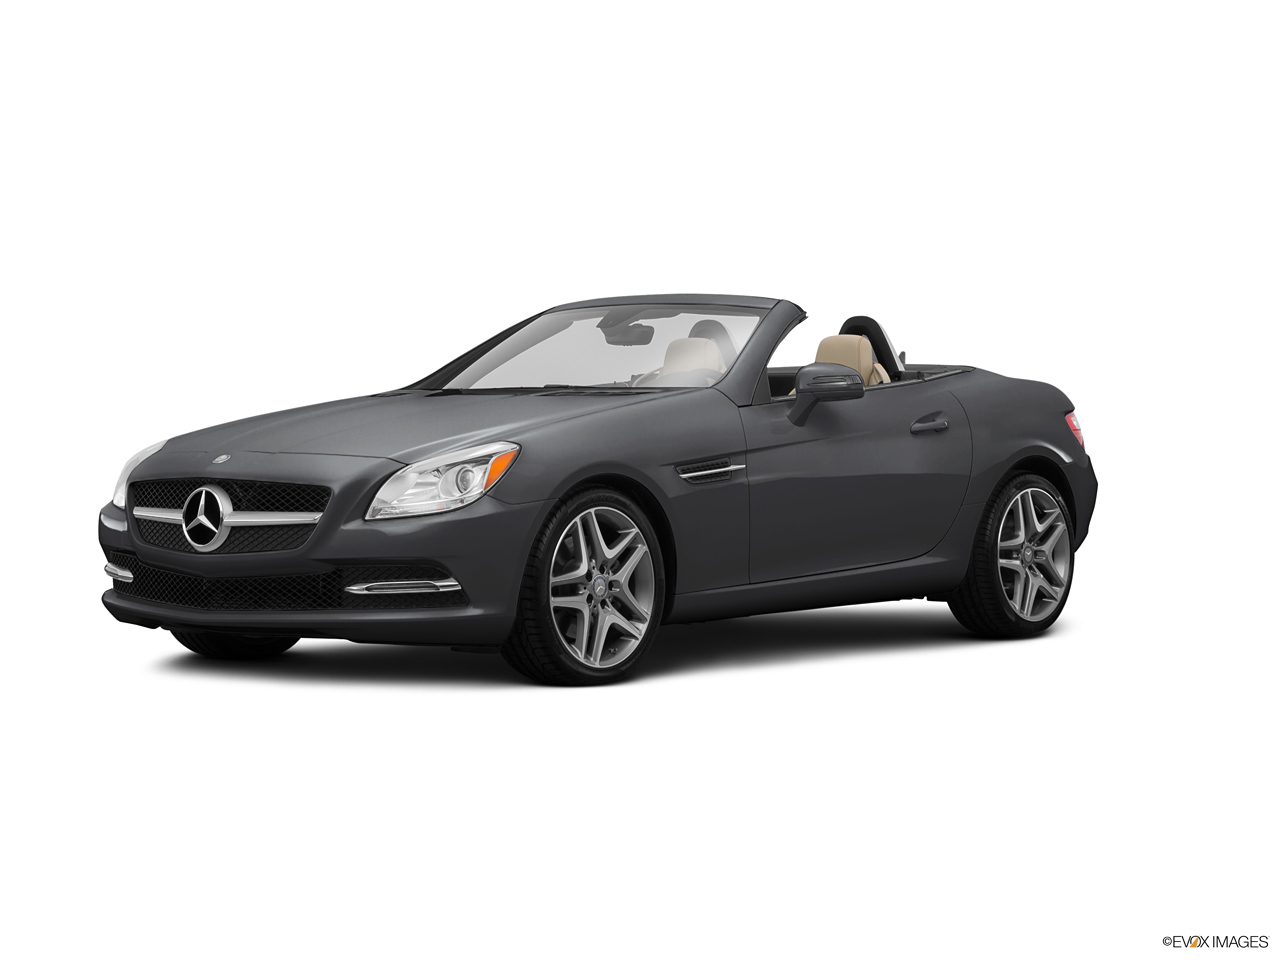 Mercedes benz slk class 2016 slk 200 in oman new car for 2016 mercedes benz slk class msrp